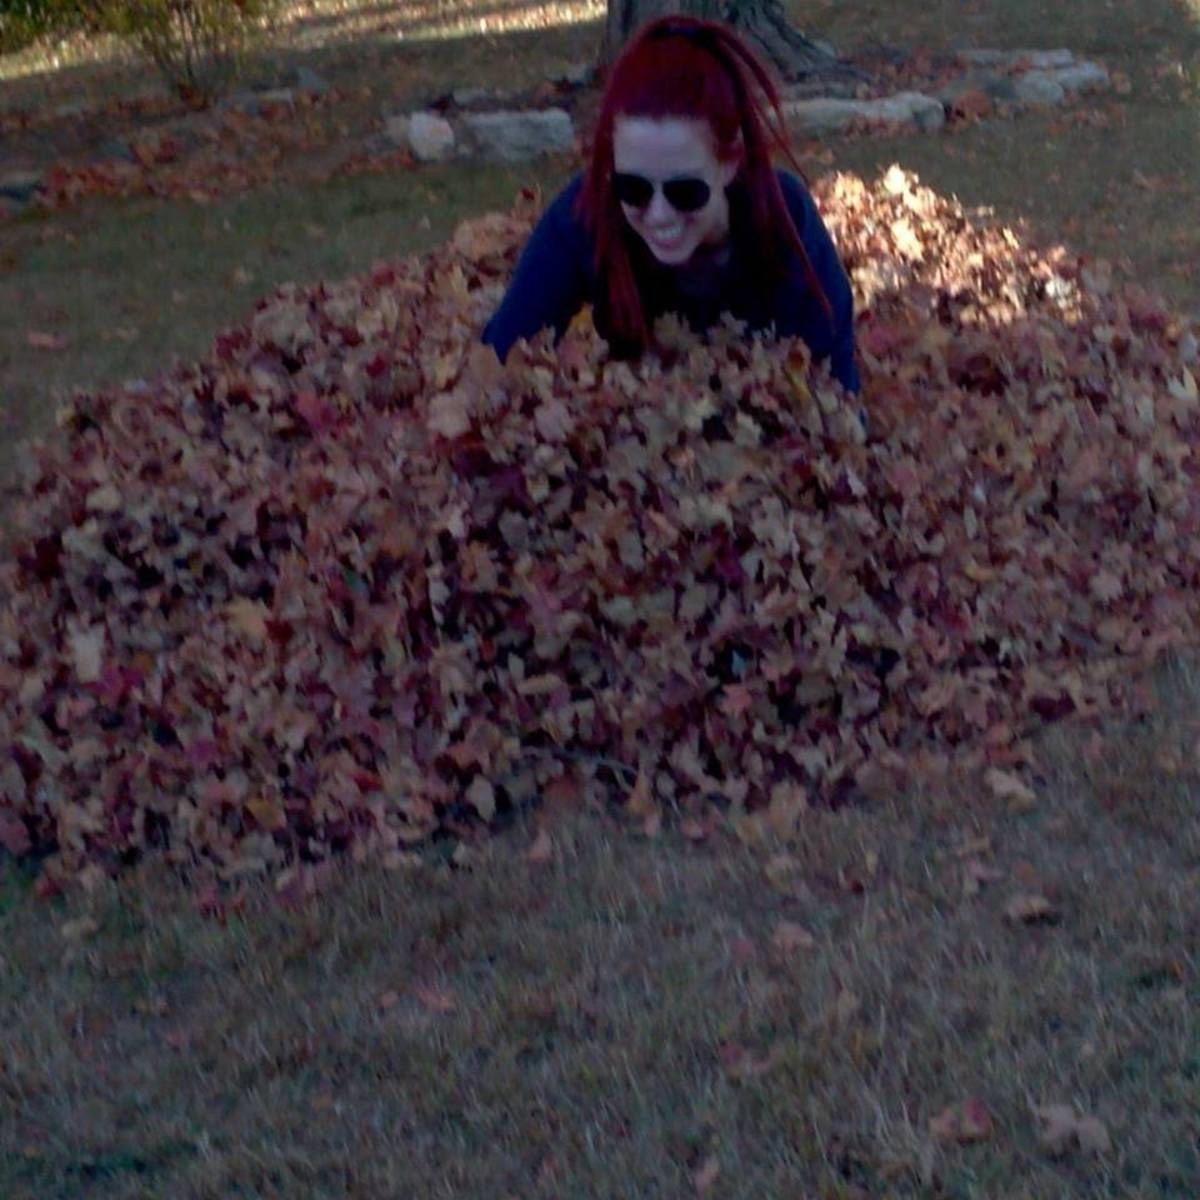 You're never too old to jump in a leaf pile.